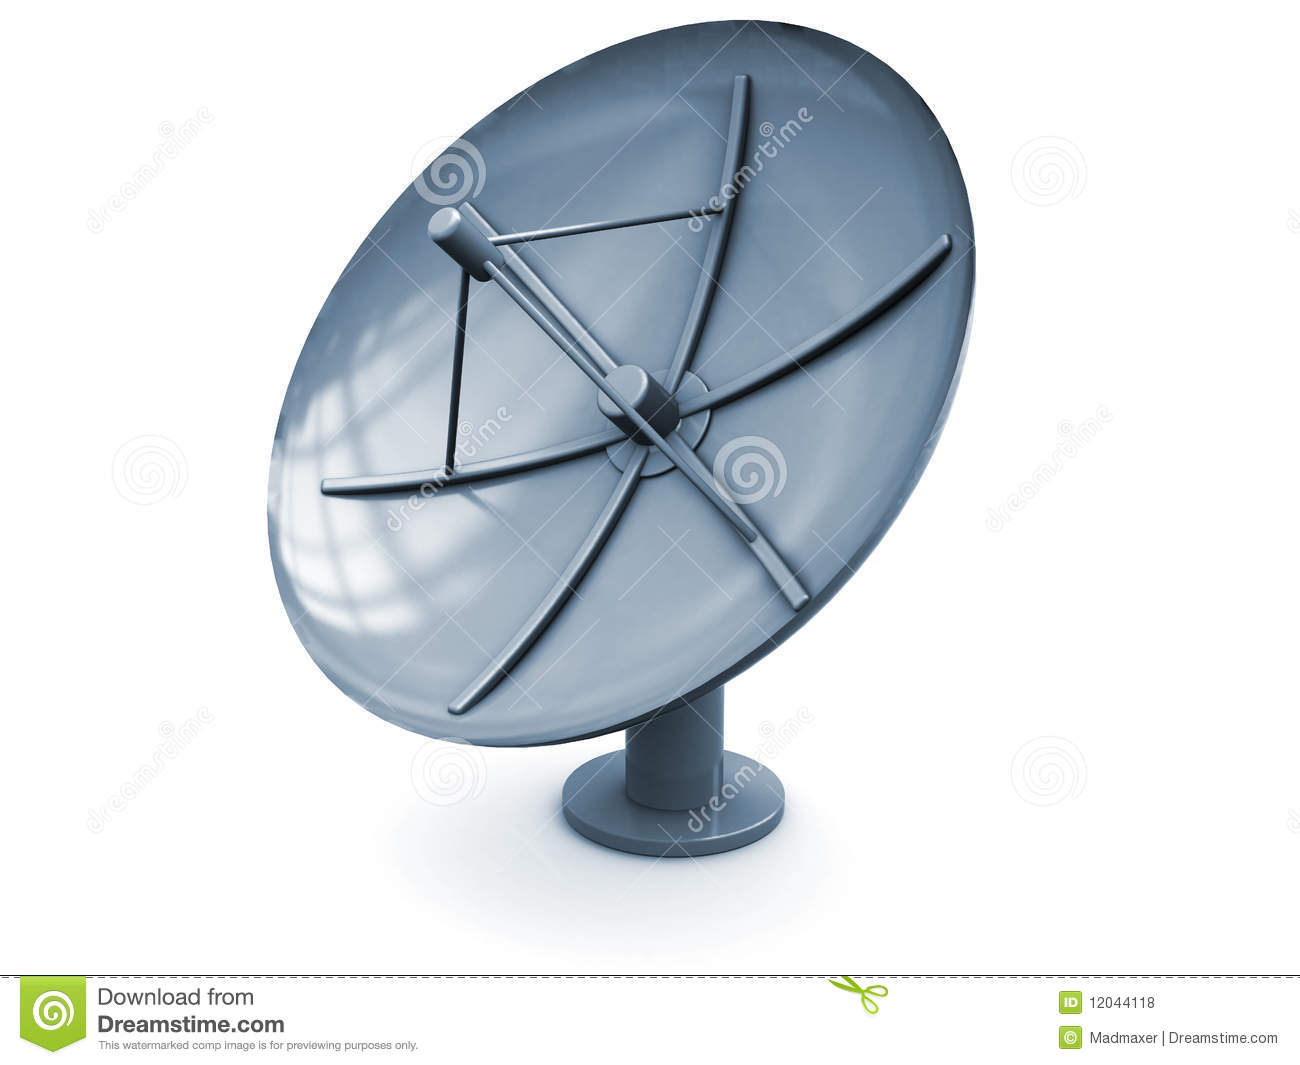 Satellite Antenna Royalty Free Stock Photos - Image: 12044118